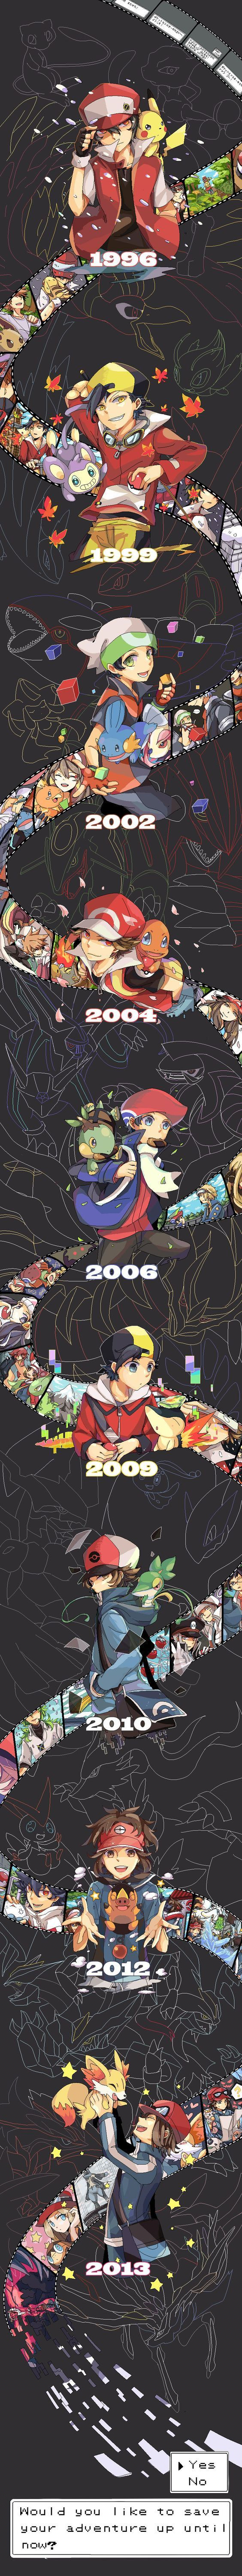 When Did Your Journey Started Artist ナギヤ 頭痛